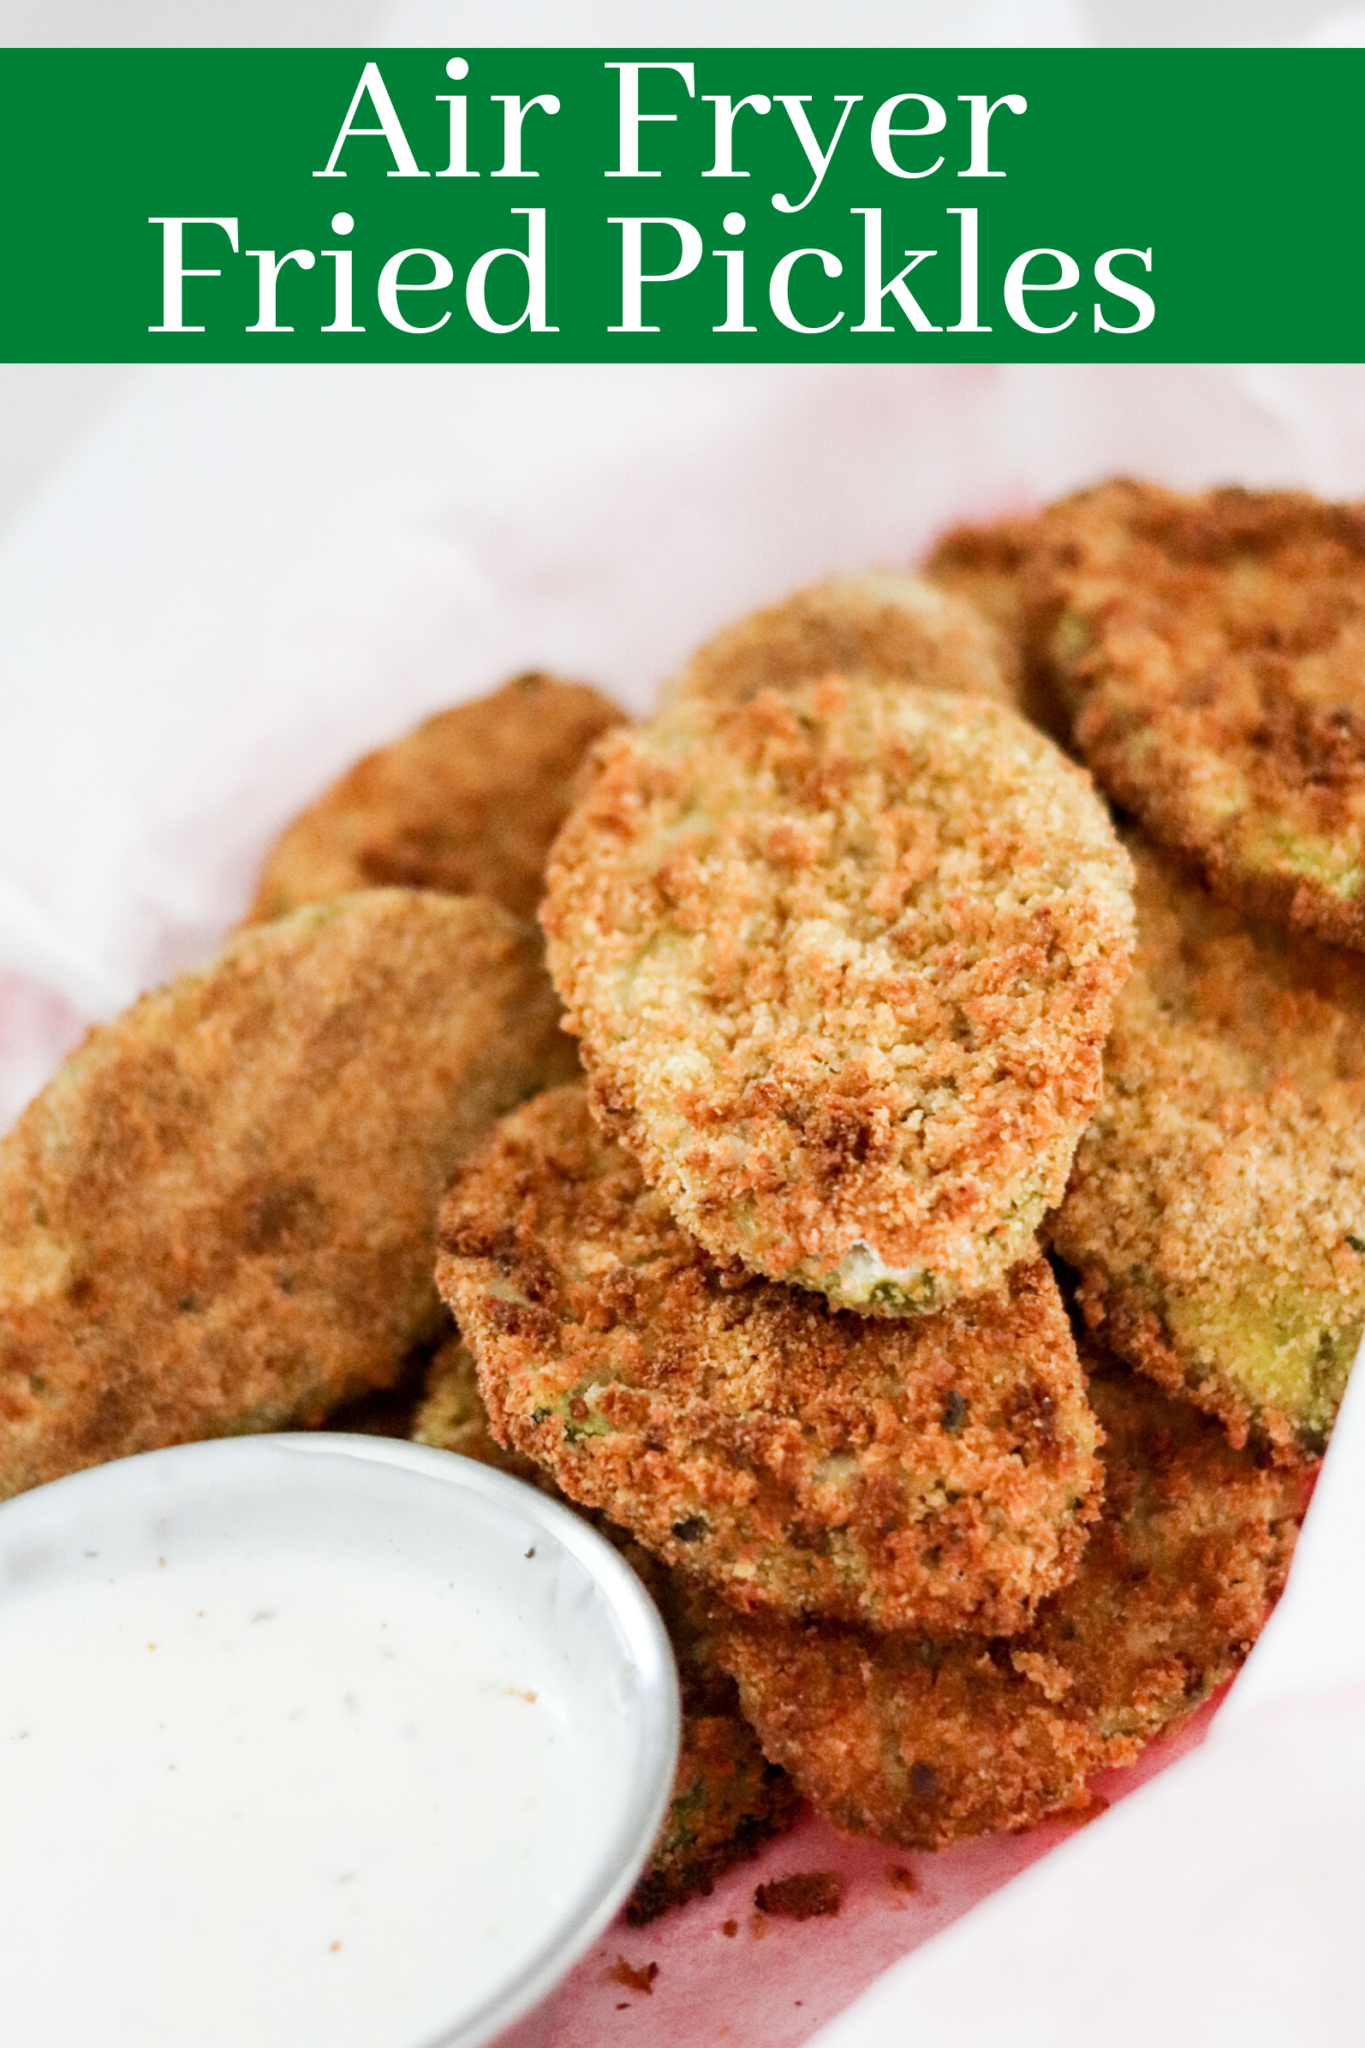 Making Fried Pickles in the Air fryer takes hardly any